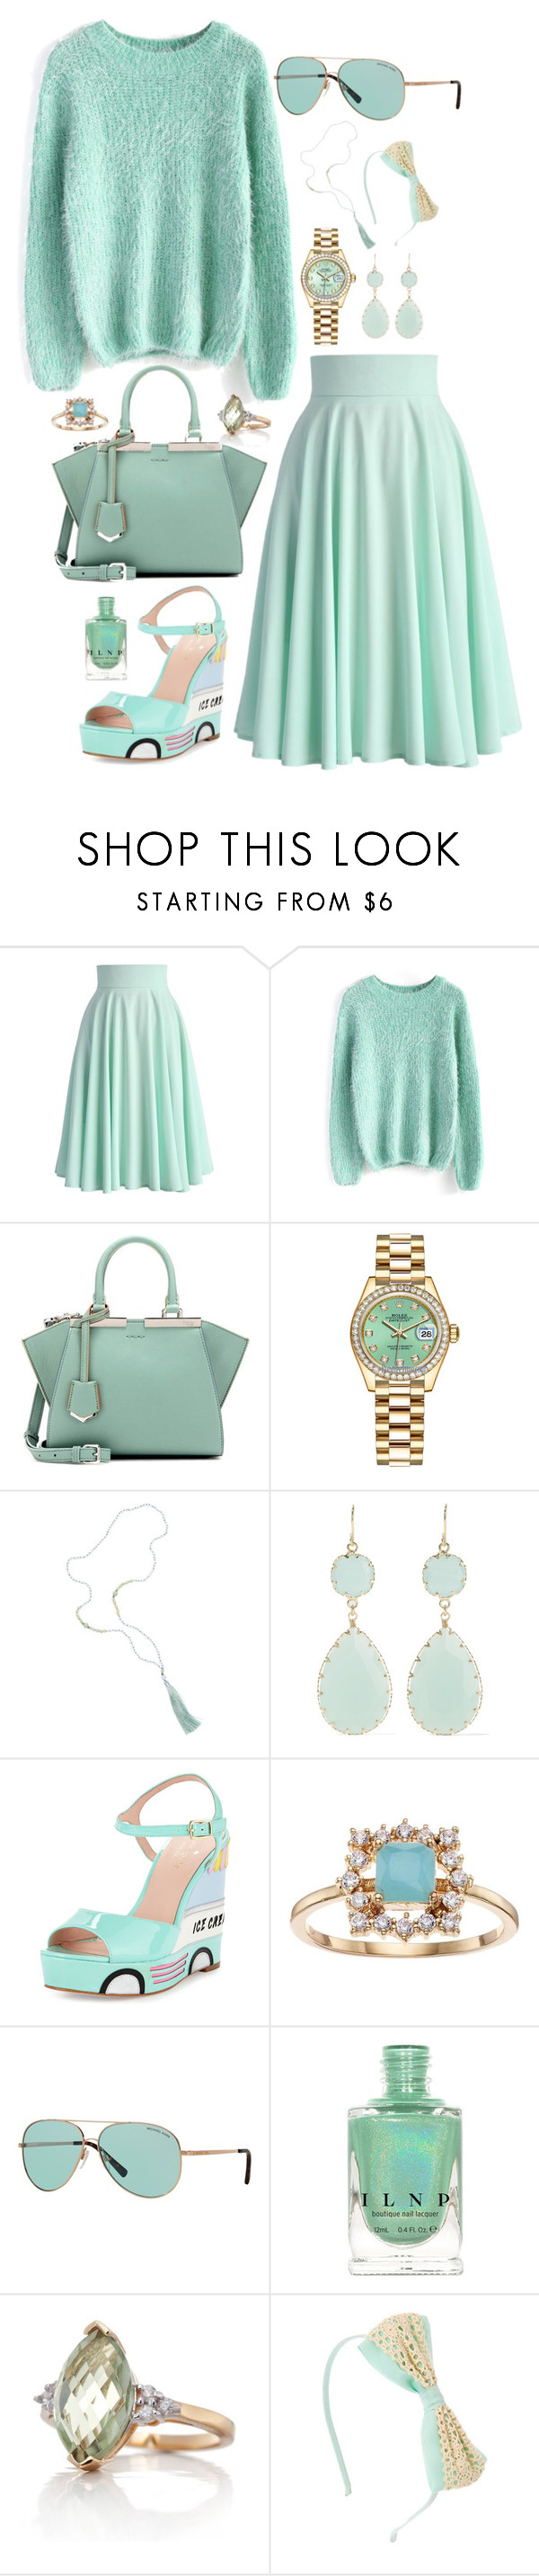 """Minty Fresh"" by downeastgirl88 ❤ liked on Polyvore featuring Chicwish, Fendi, Rolex, Kenneth Jay Lane, Kate Spade, LC Lauren Conrad, Michael Kors, Belk & Co. and claire's"